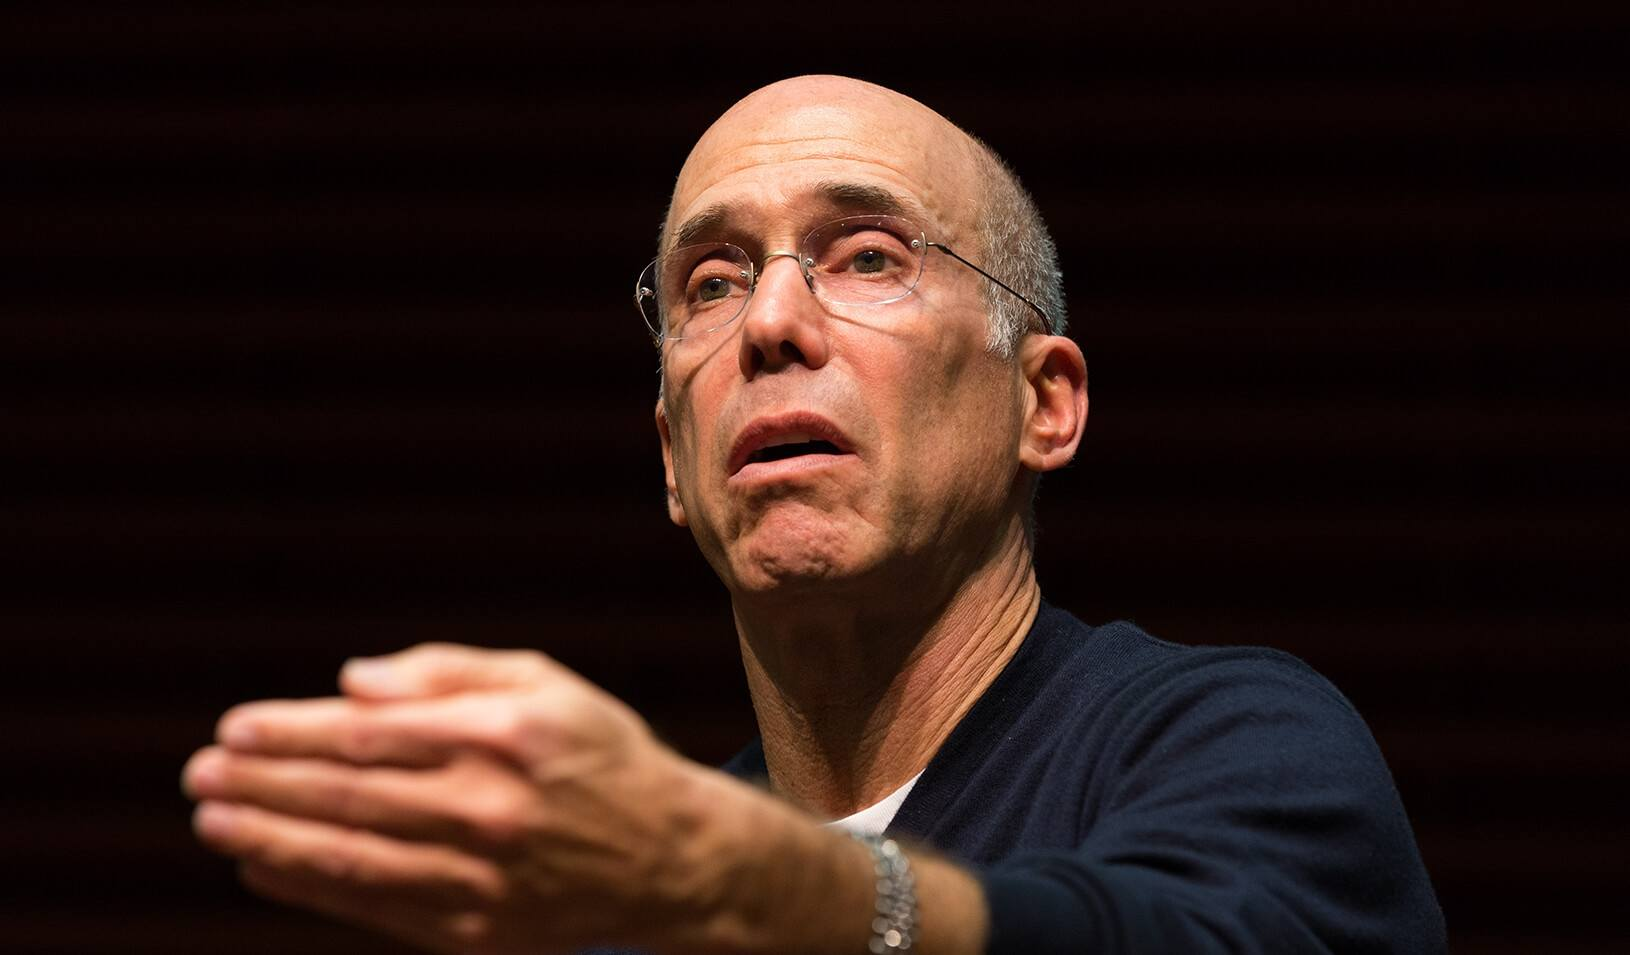 Jeffrey Katzenberg: How Failure Makes a Better Leader